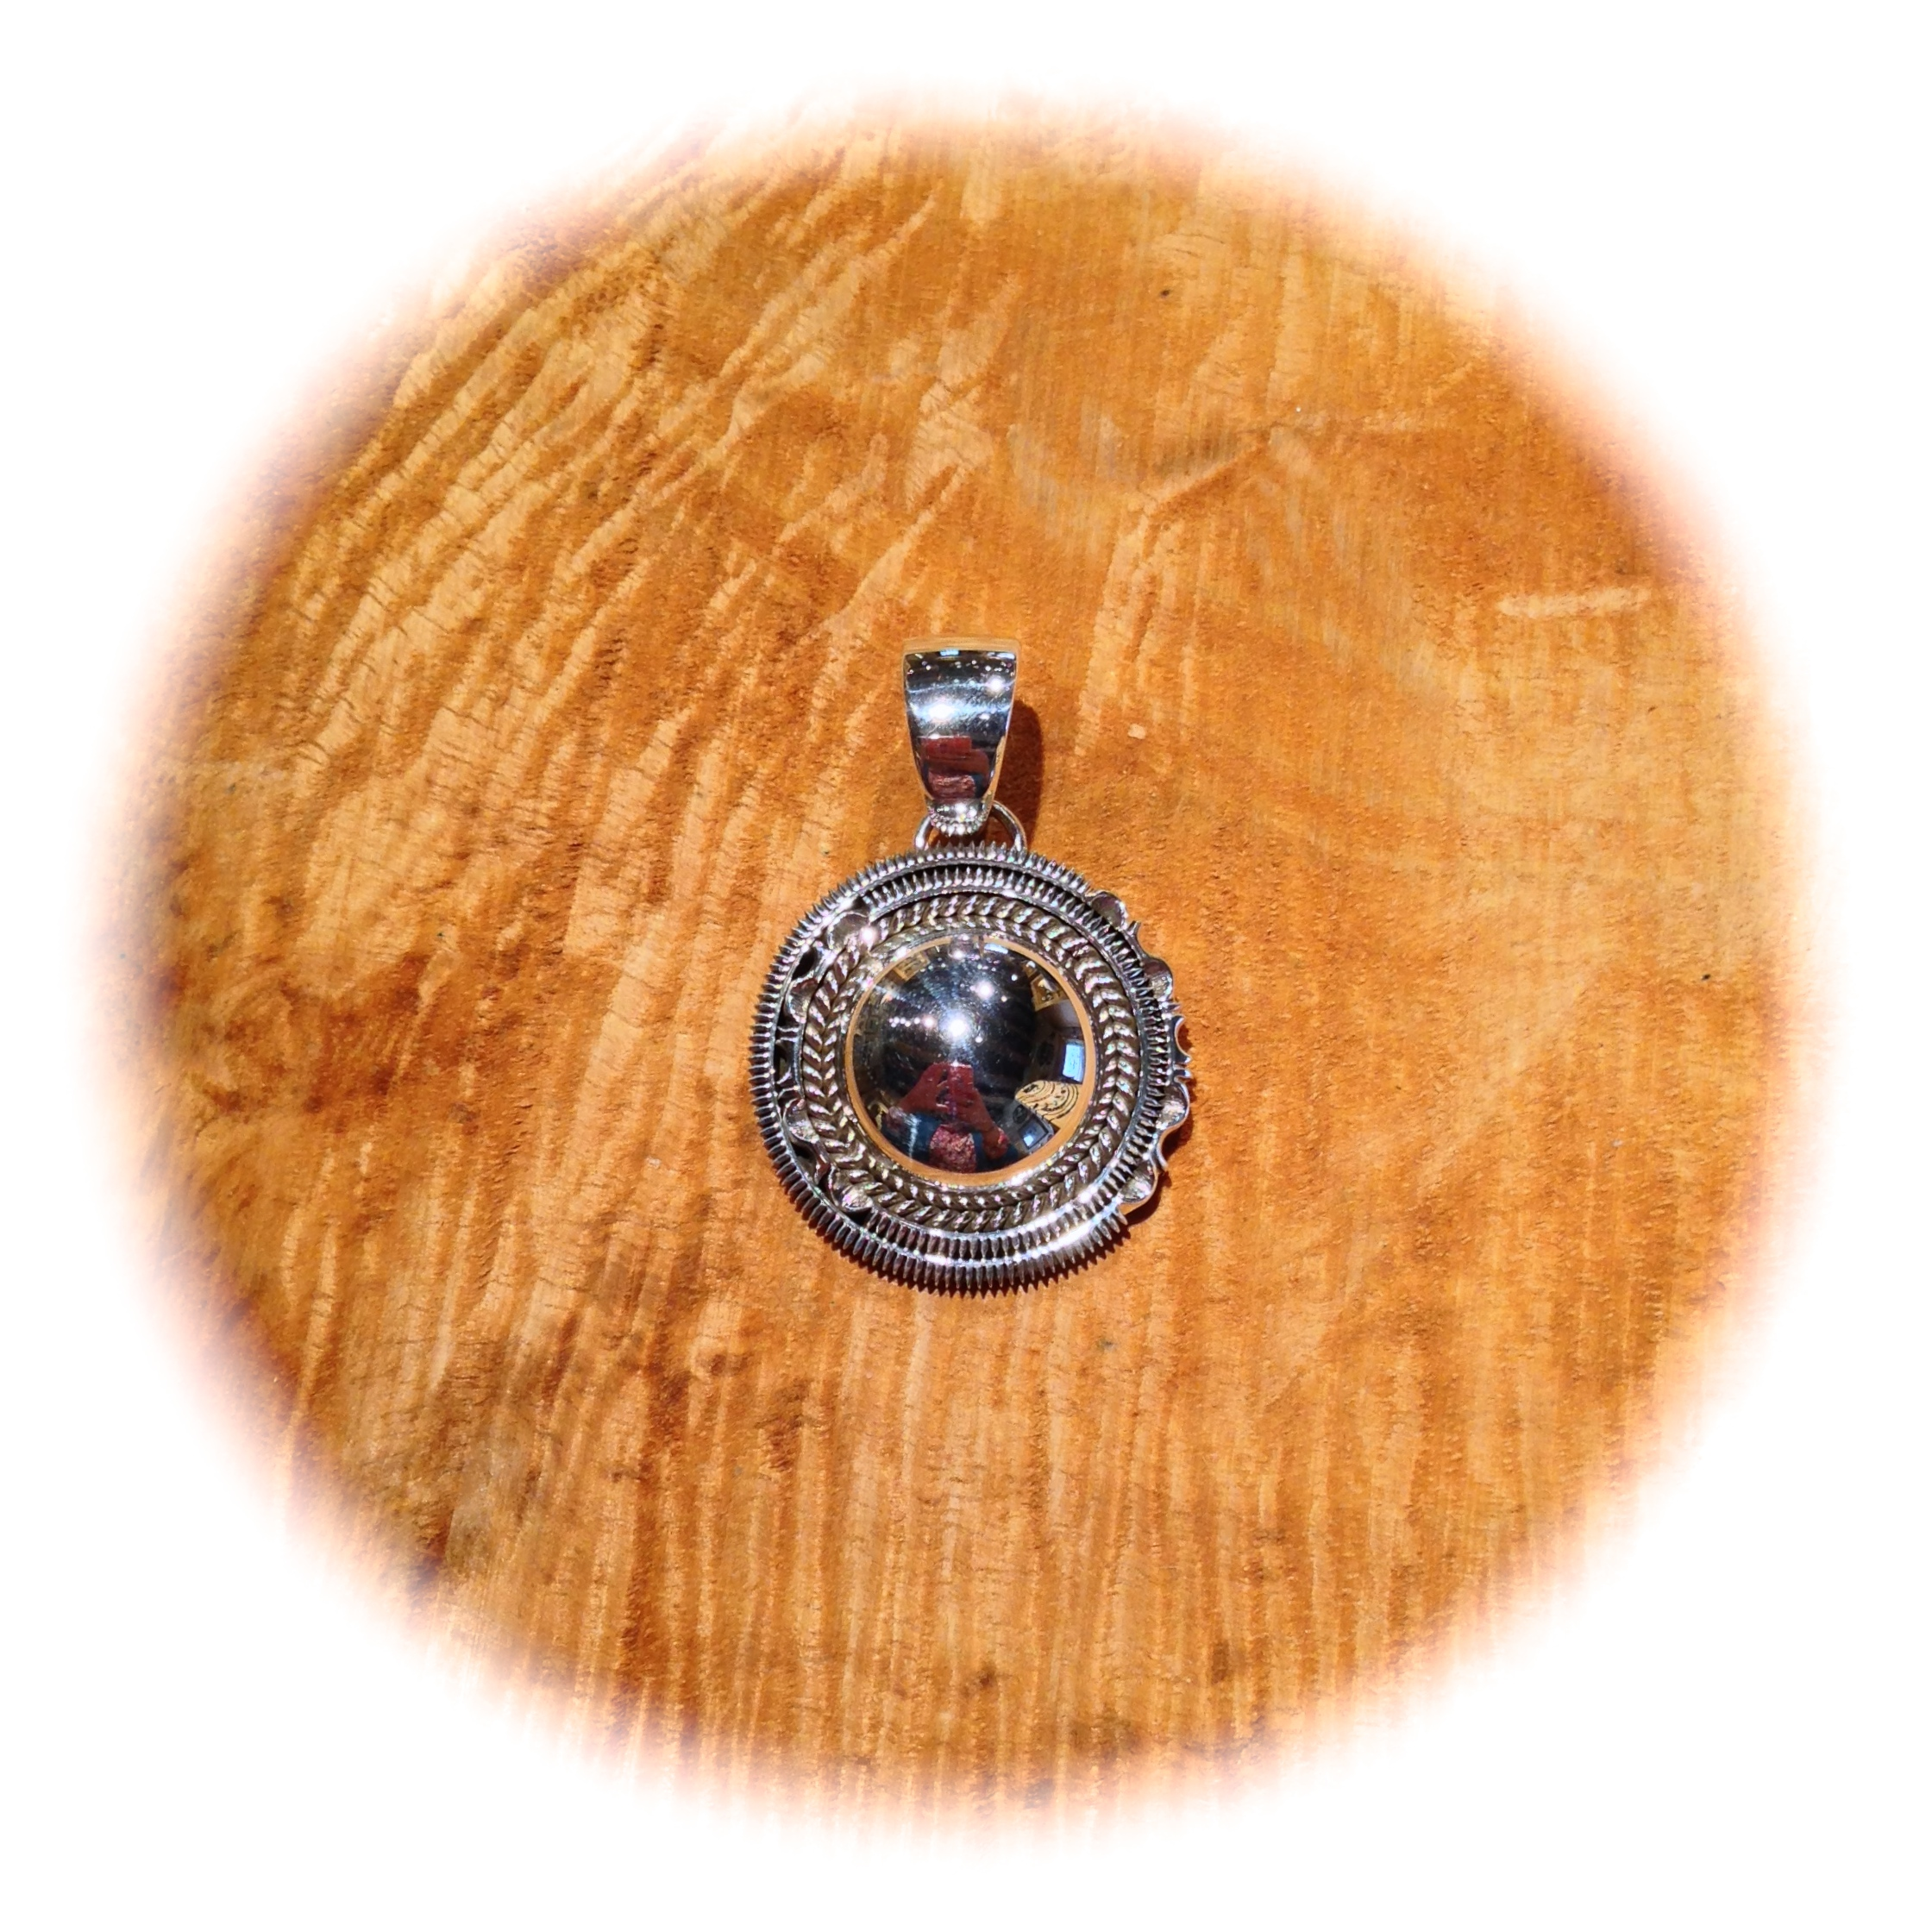 Collaboration Pendant by Artie Yellowhorse and Henry Chackee